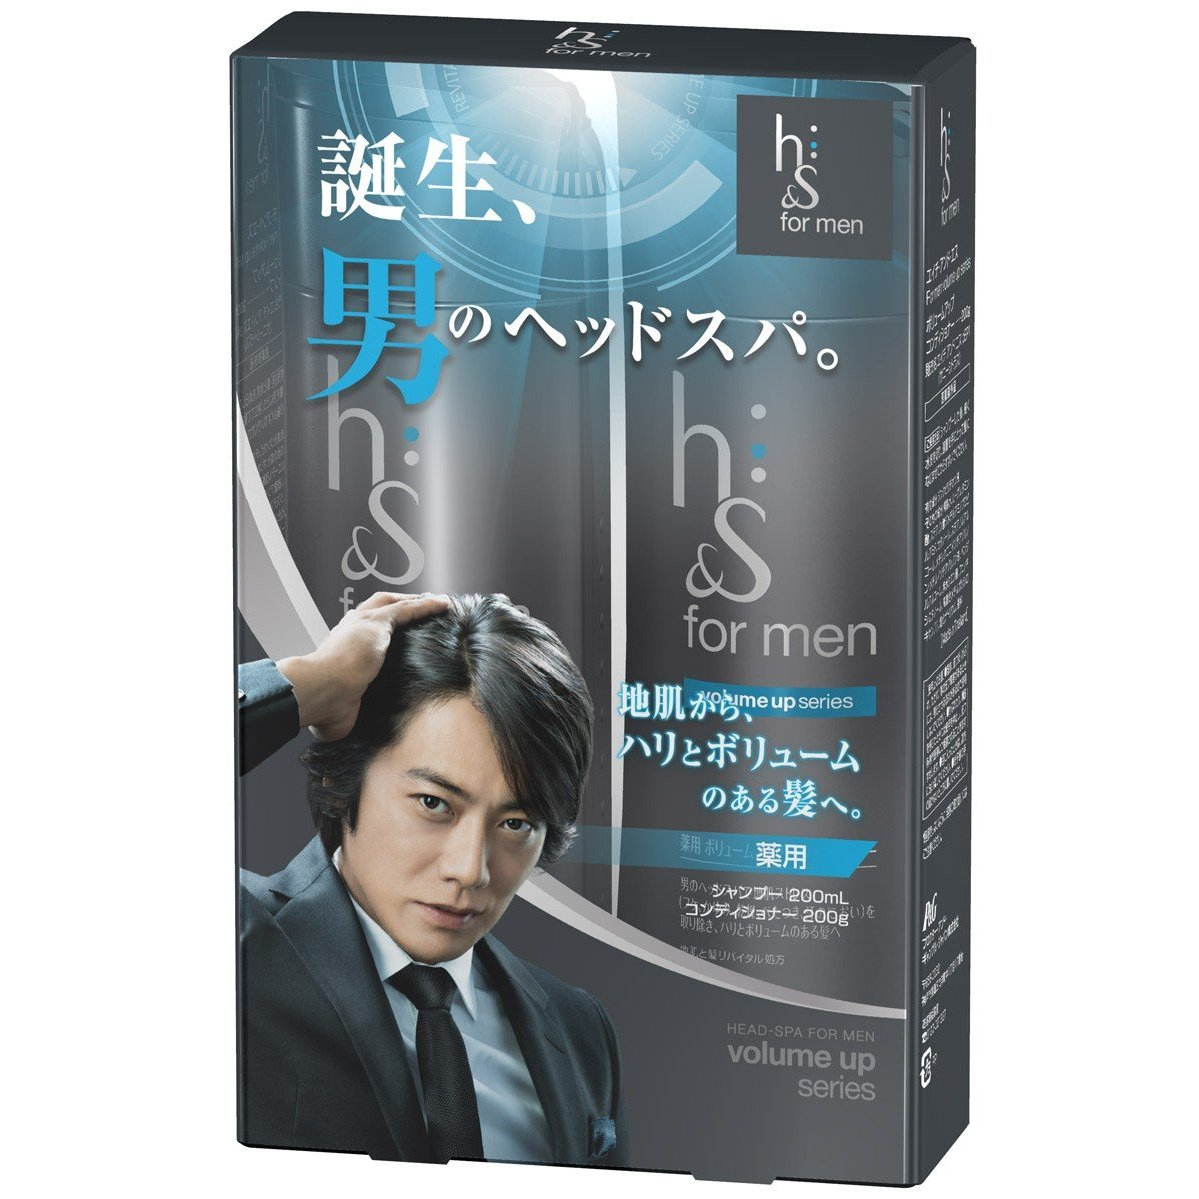 h&s for men を購入&使用